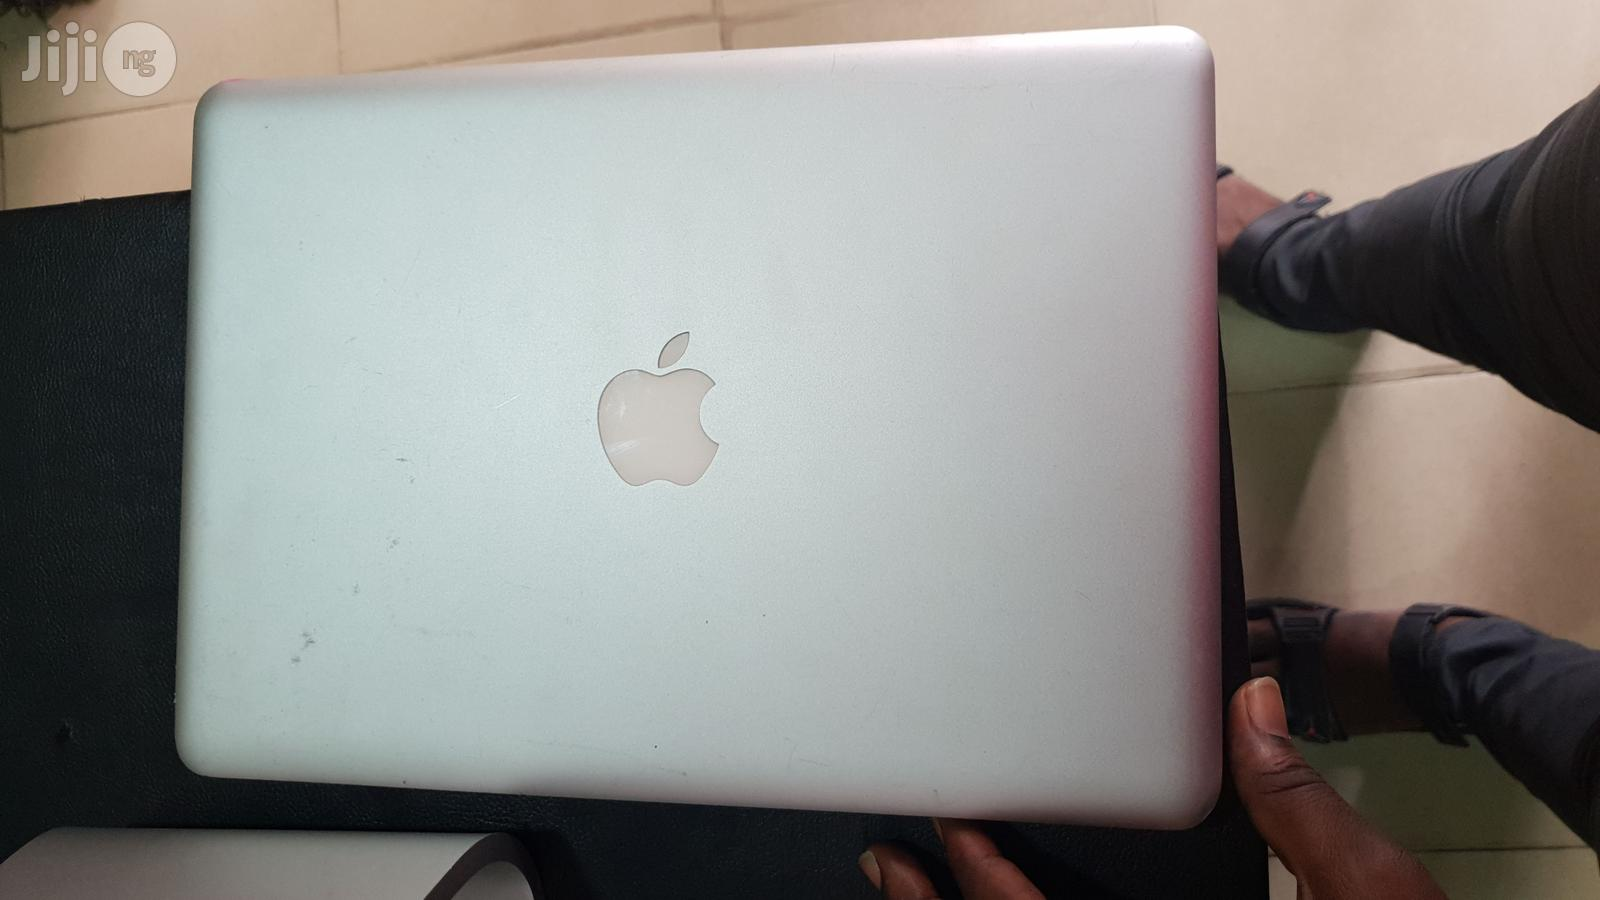 Laptop Apple MacBook Pro 8GB Intel Core i7 HDD 750GB | Laptops & Computers for sale in Ikeja, Lagos State, Nigeria